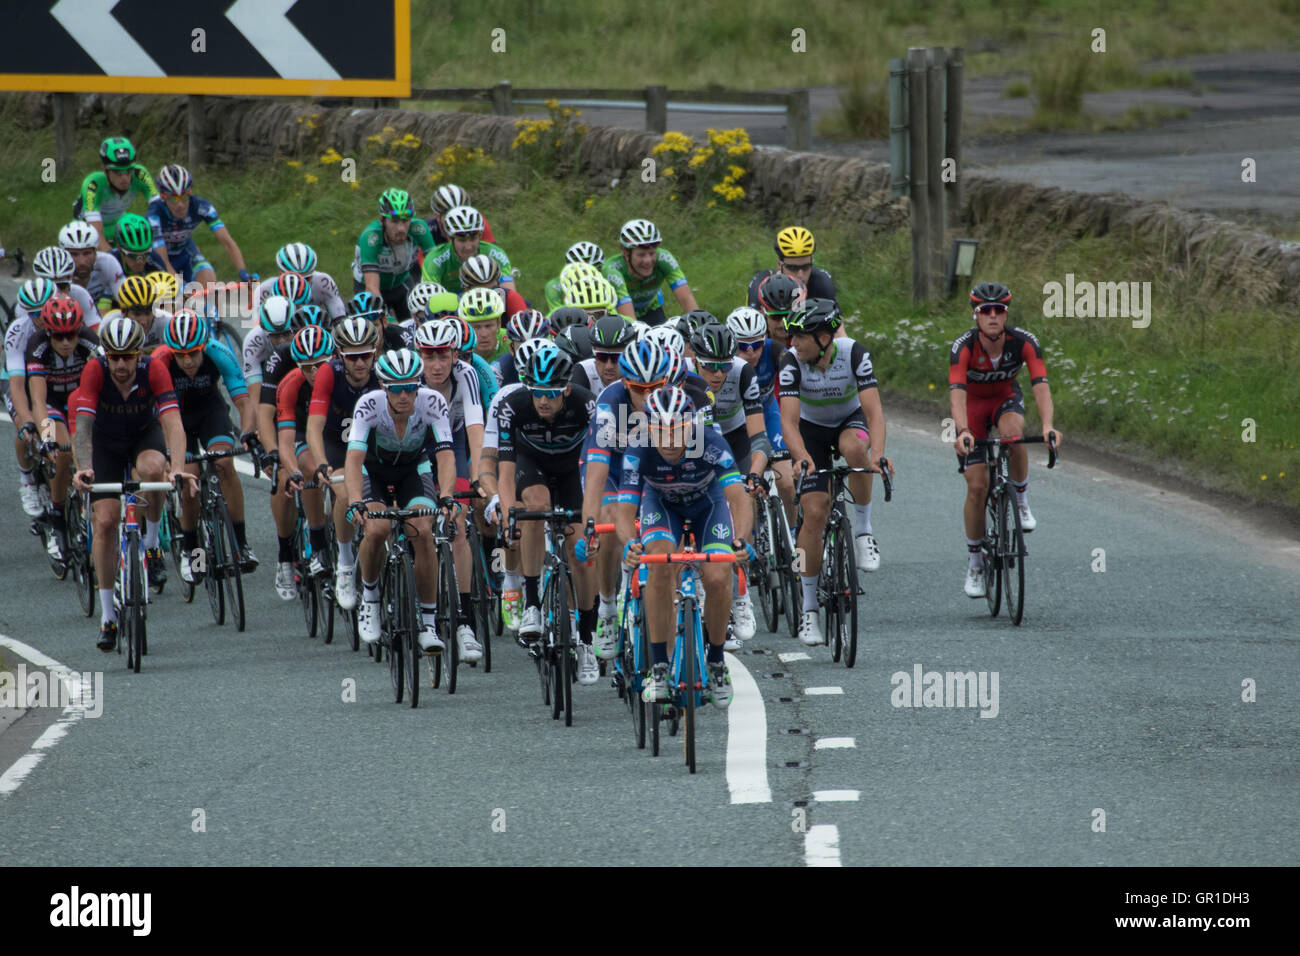 Cheshire, UK. 6th September, 2016. The peloton during the climb to the Cat and Fiddle, containing Sir Bradley Wiggins - Stock Image